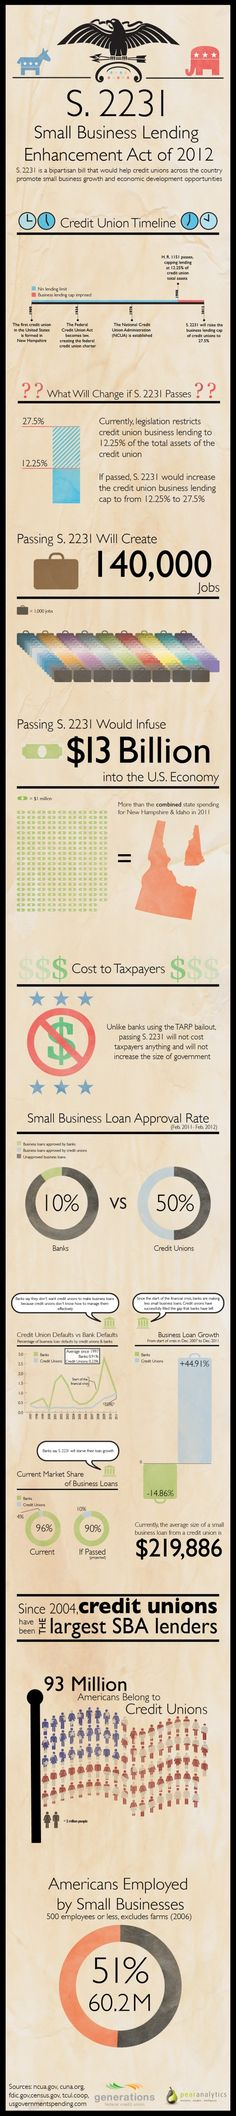 Infographic explaining the Small Business Lending Enhancement Act for credit unions.  http://www.businessloan.org/loans/credit-union-business-loans-infographic/